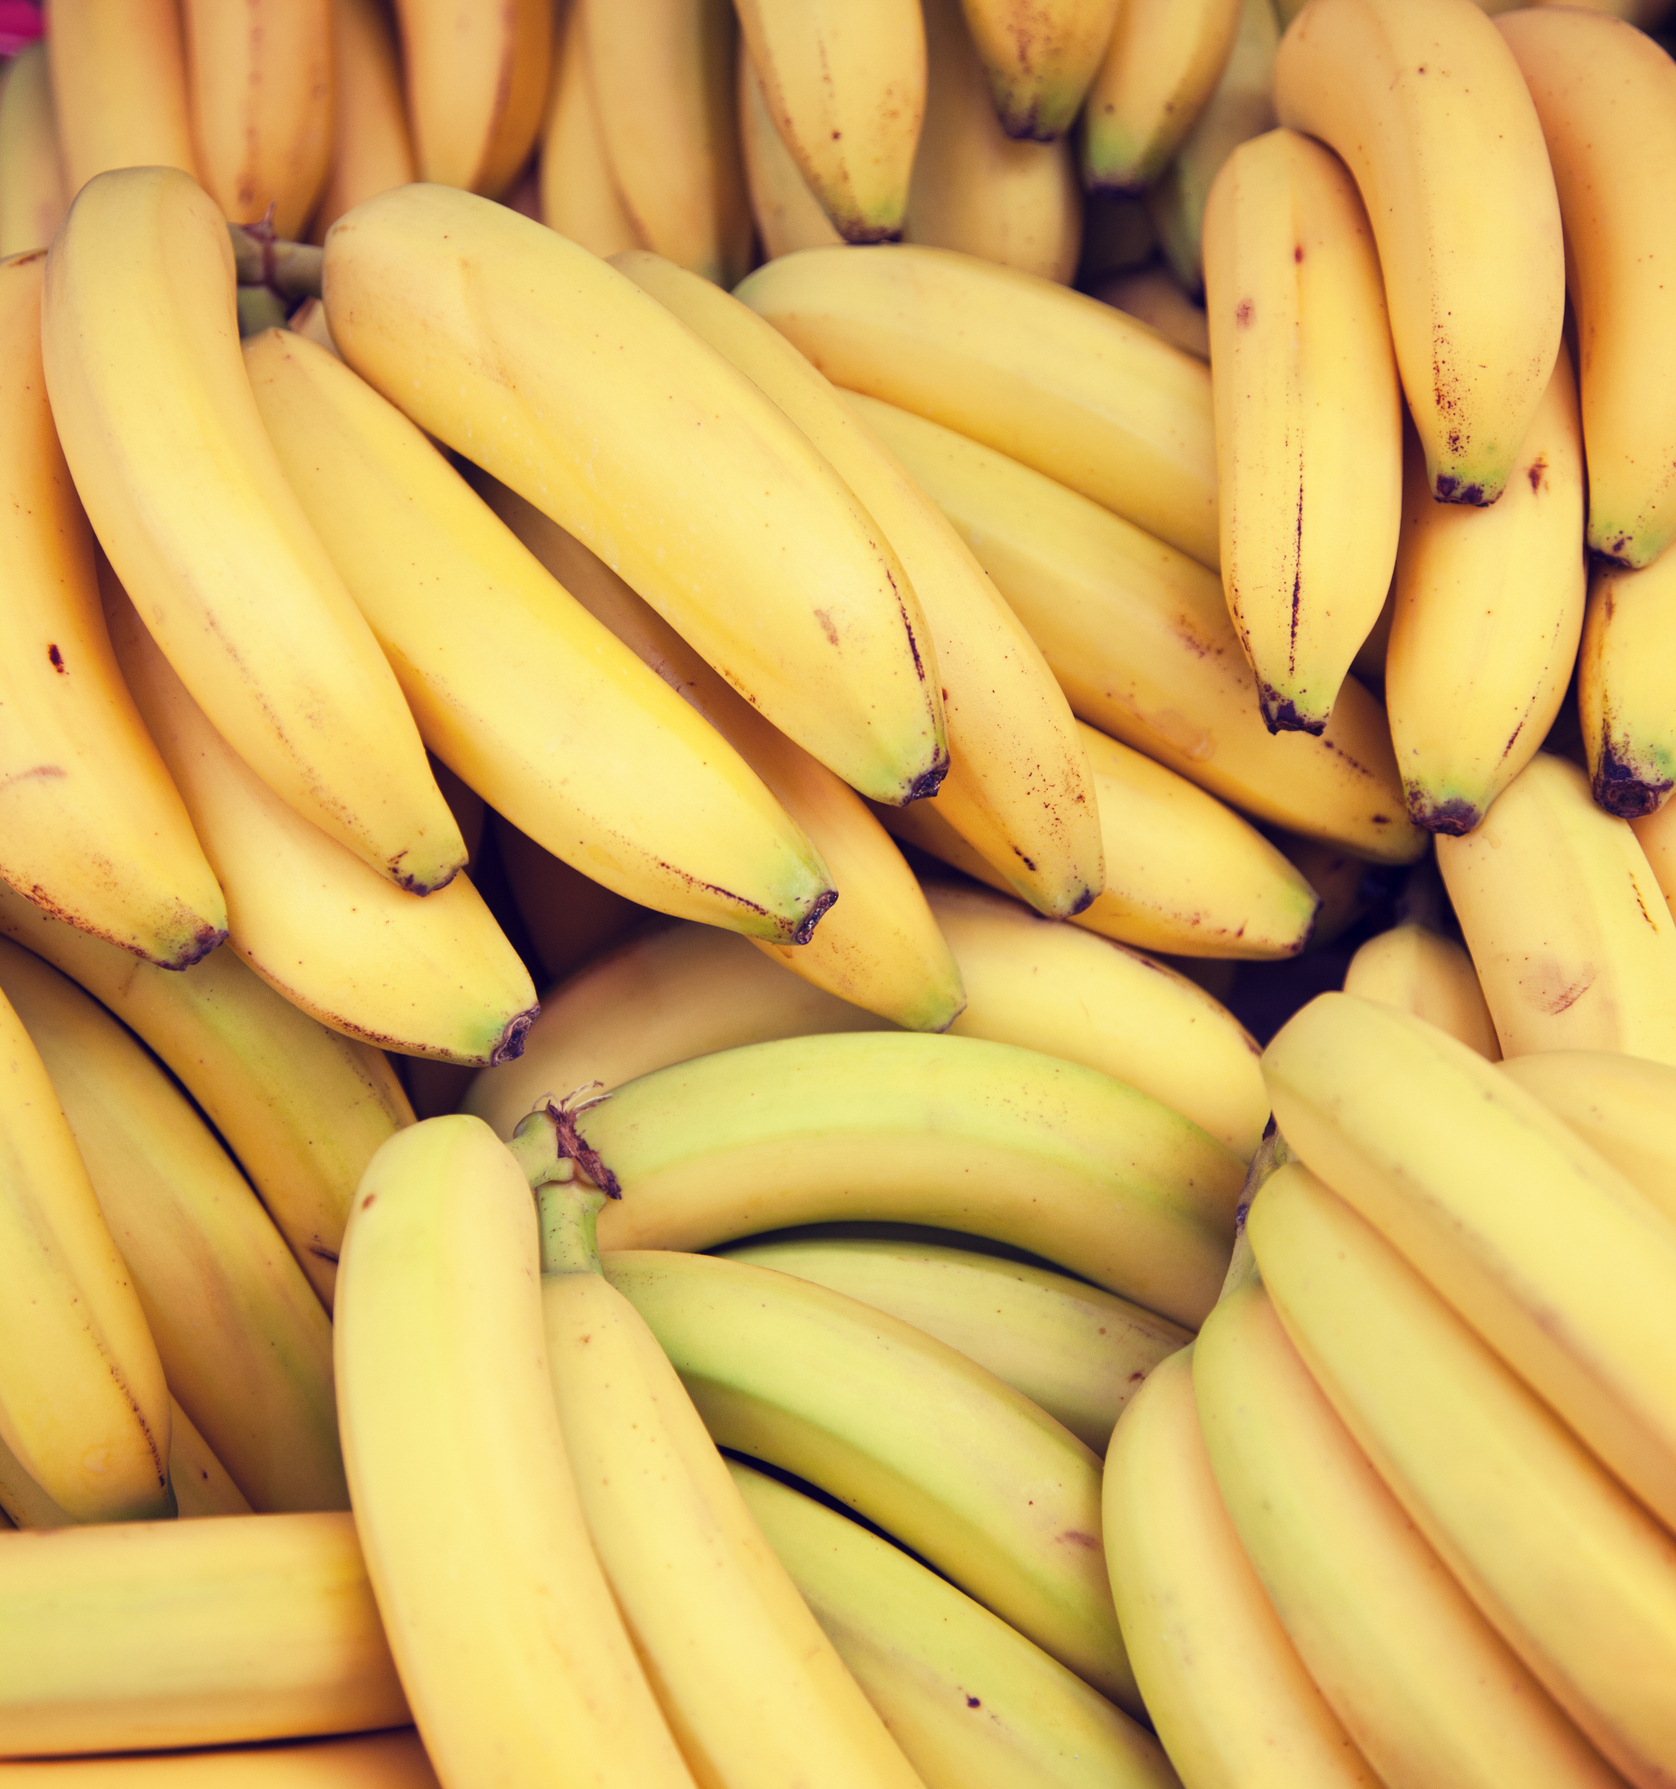 Eat a banana on its own or slice it over oatmeal for even more soluble fiber, which can lower cholesterol. One banana contains one gram of soluble fiber and three grams of dietary fiber.